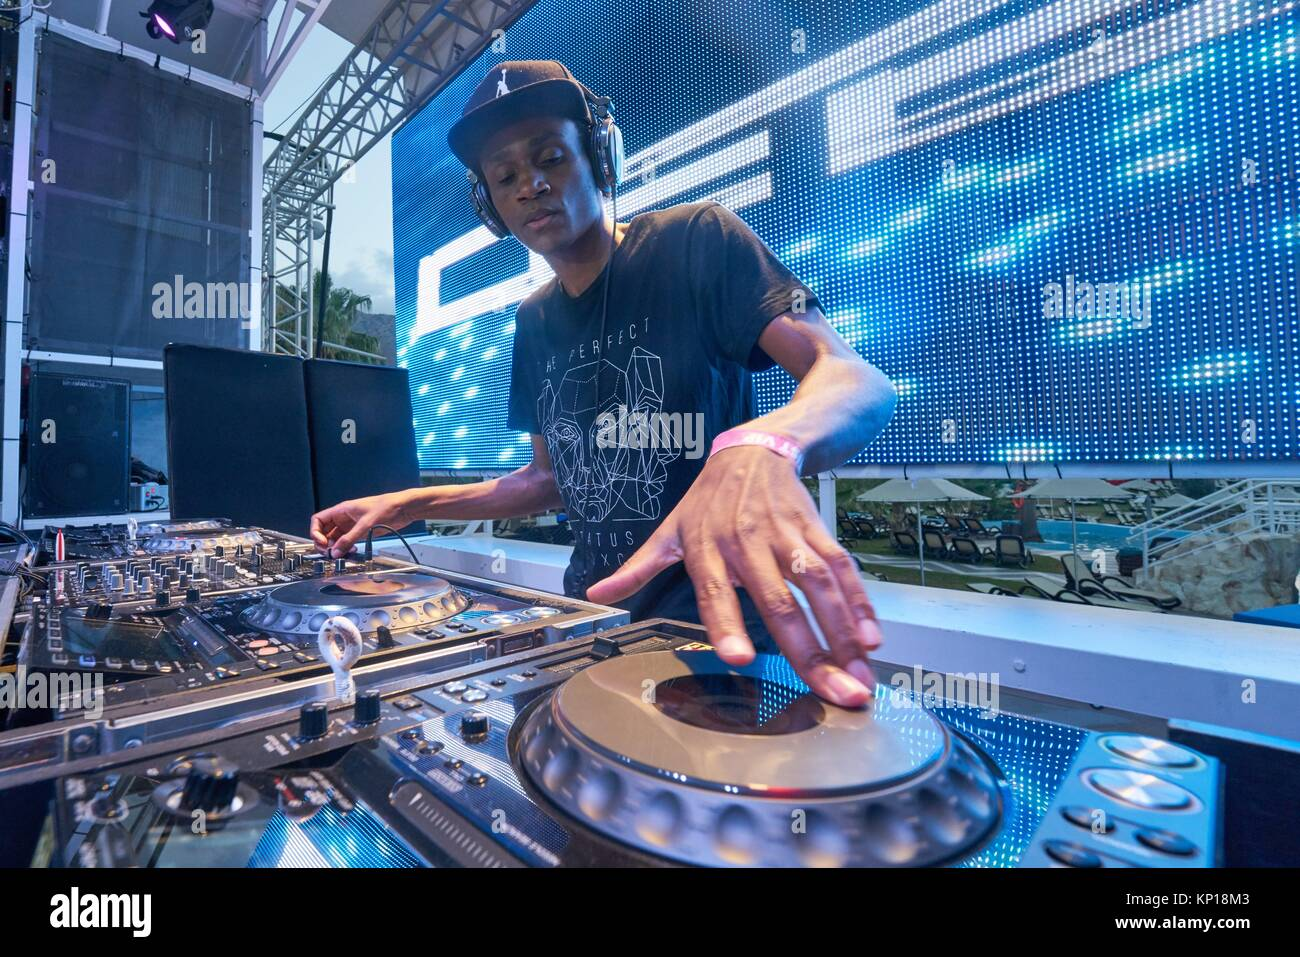 DJ DebK at music festival Starbeach Lovestar Neon in Hersonissos, Crete, Greece, on 23. August 2017 - Stock Image